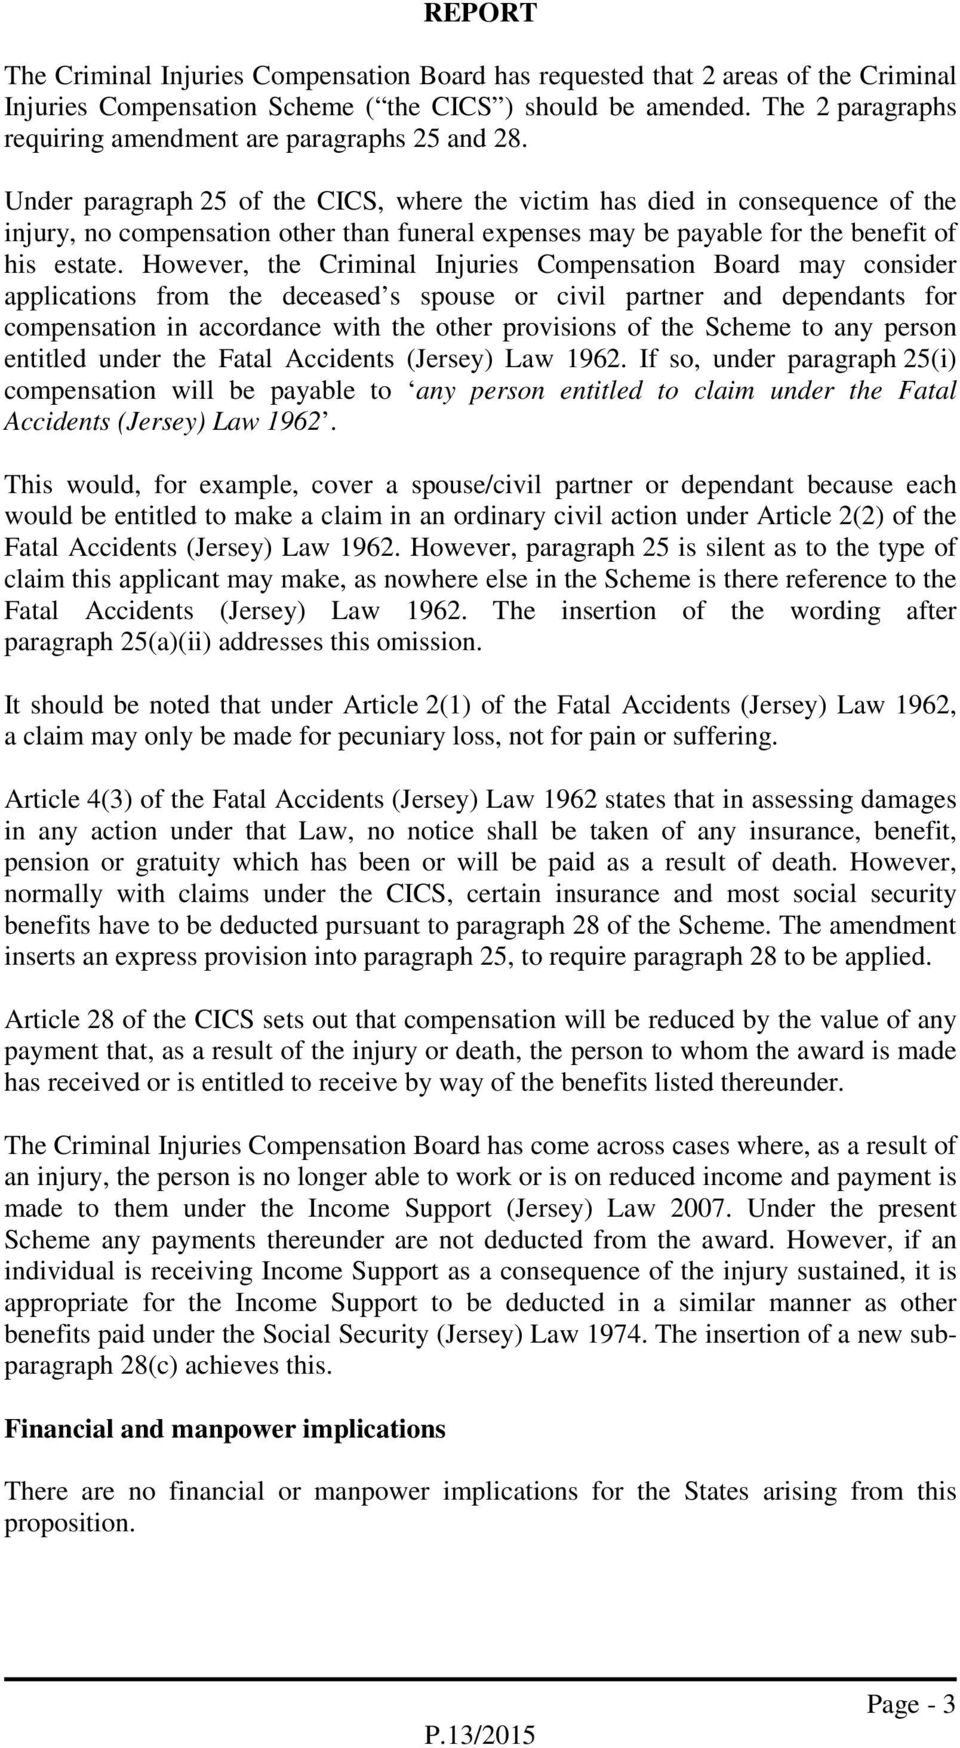 Under paragraph 25 of the CICS, where the victim has died in consequence of the injury, no compensation other than funeral expenses may be payable for the benefit of his estate.